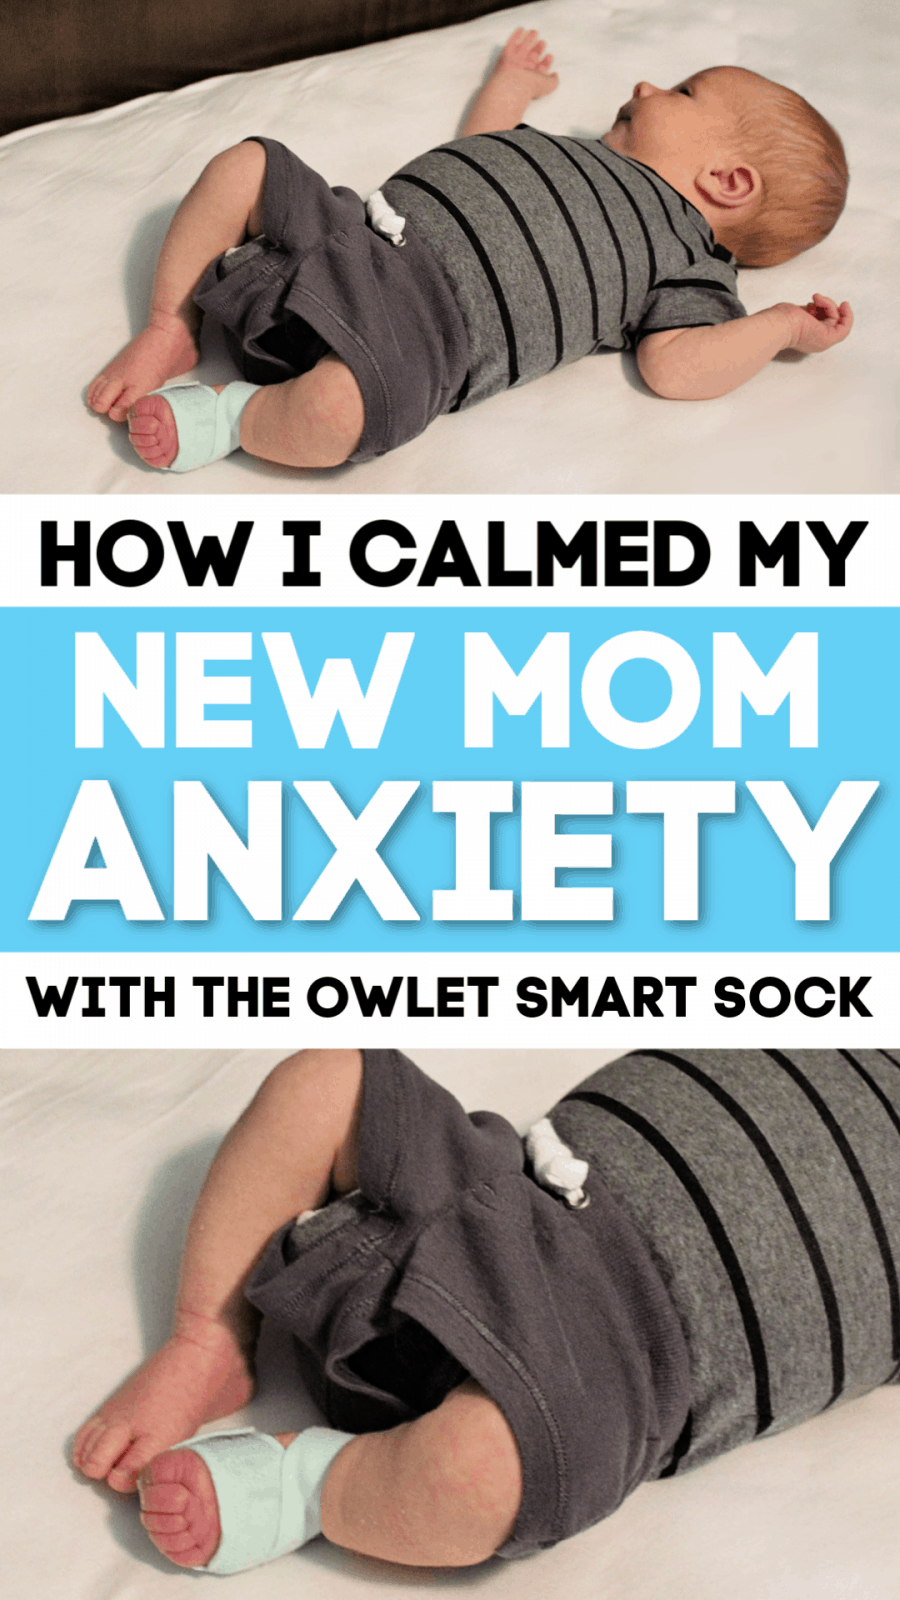 How I Calmed My New Mom Anxiety